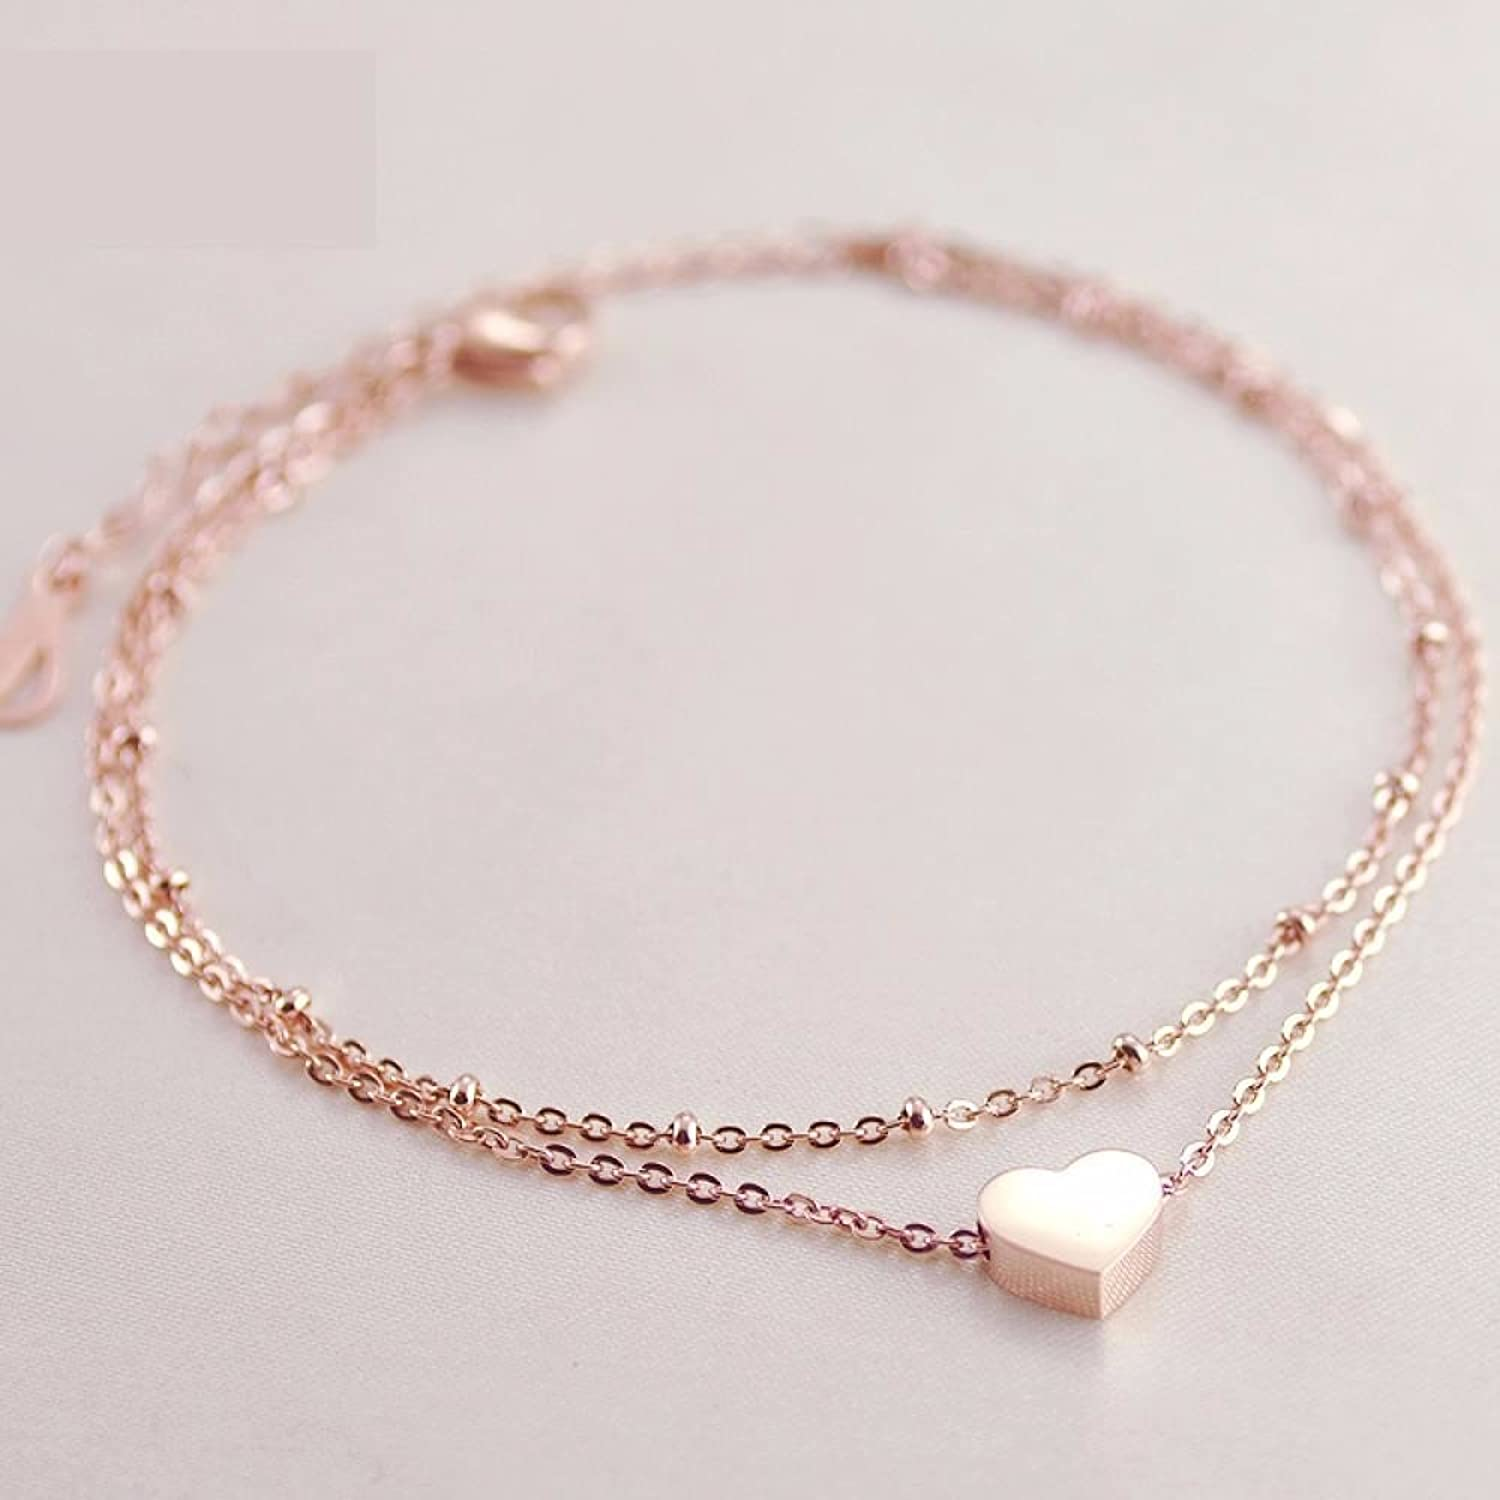 chain free italy jewelry silver anklets flat nickel fine anklet bracelet c sterling girls cable